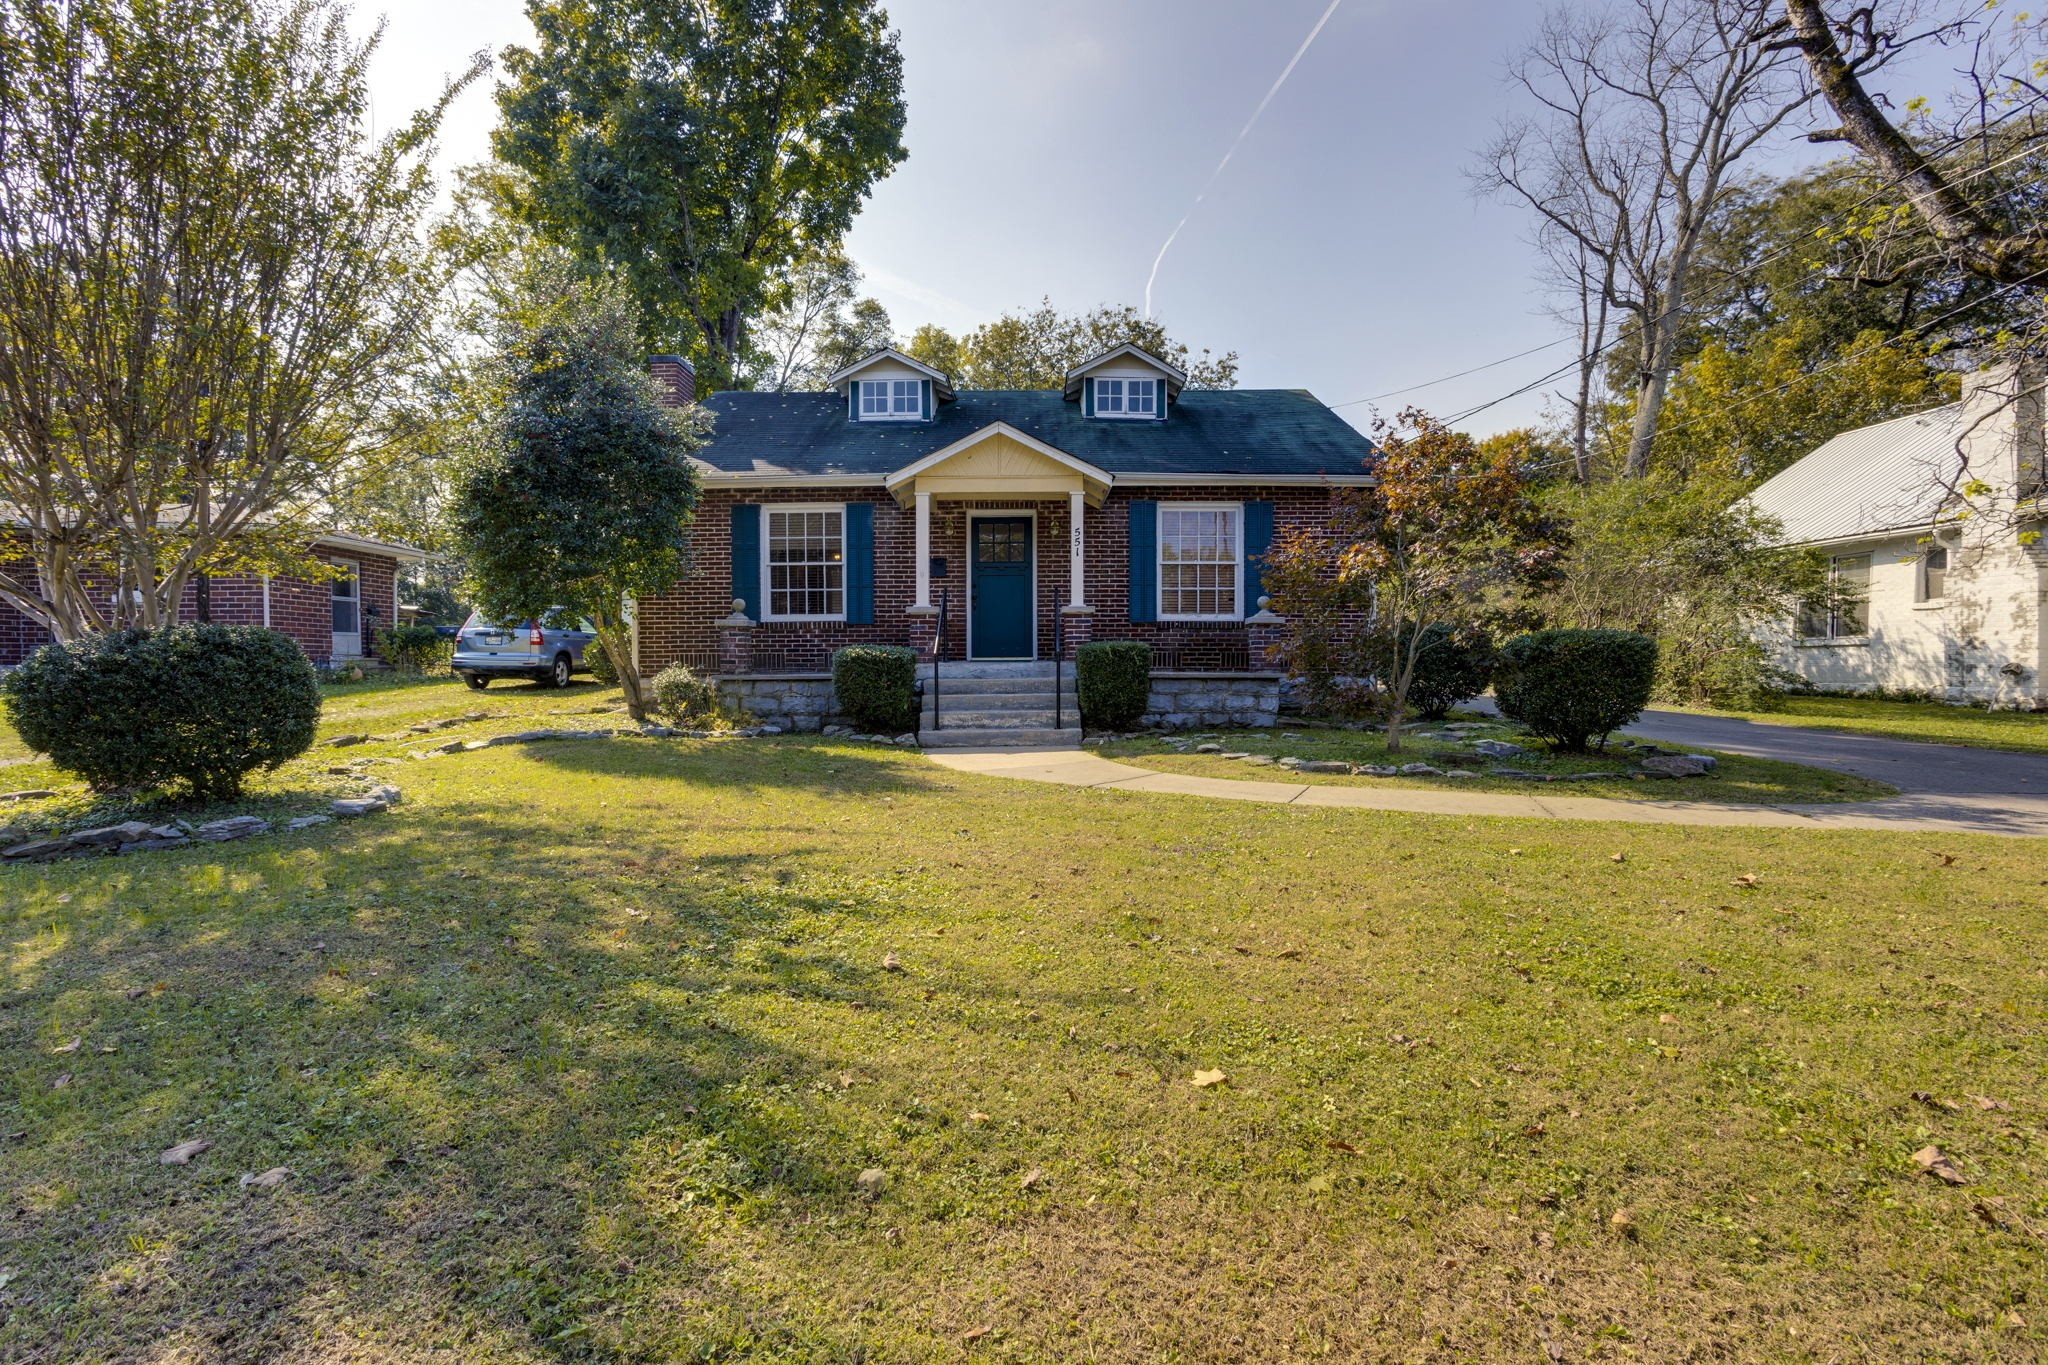 A cozy brick home in a great location just minutes from town! Includes 2 bedrooms, an upstairs flex room, a large lot with a 12x20 shop, the original stone fireplace, a 5x8 laundry room, new flooring, and bright sunroom. This home is move in ready!